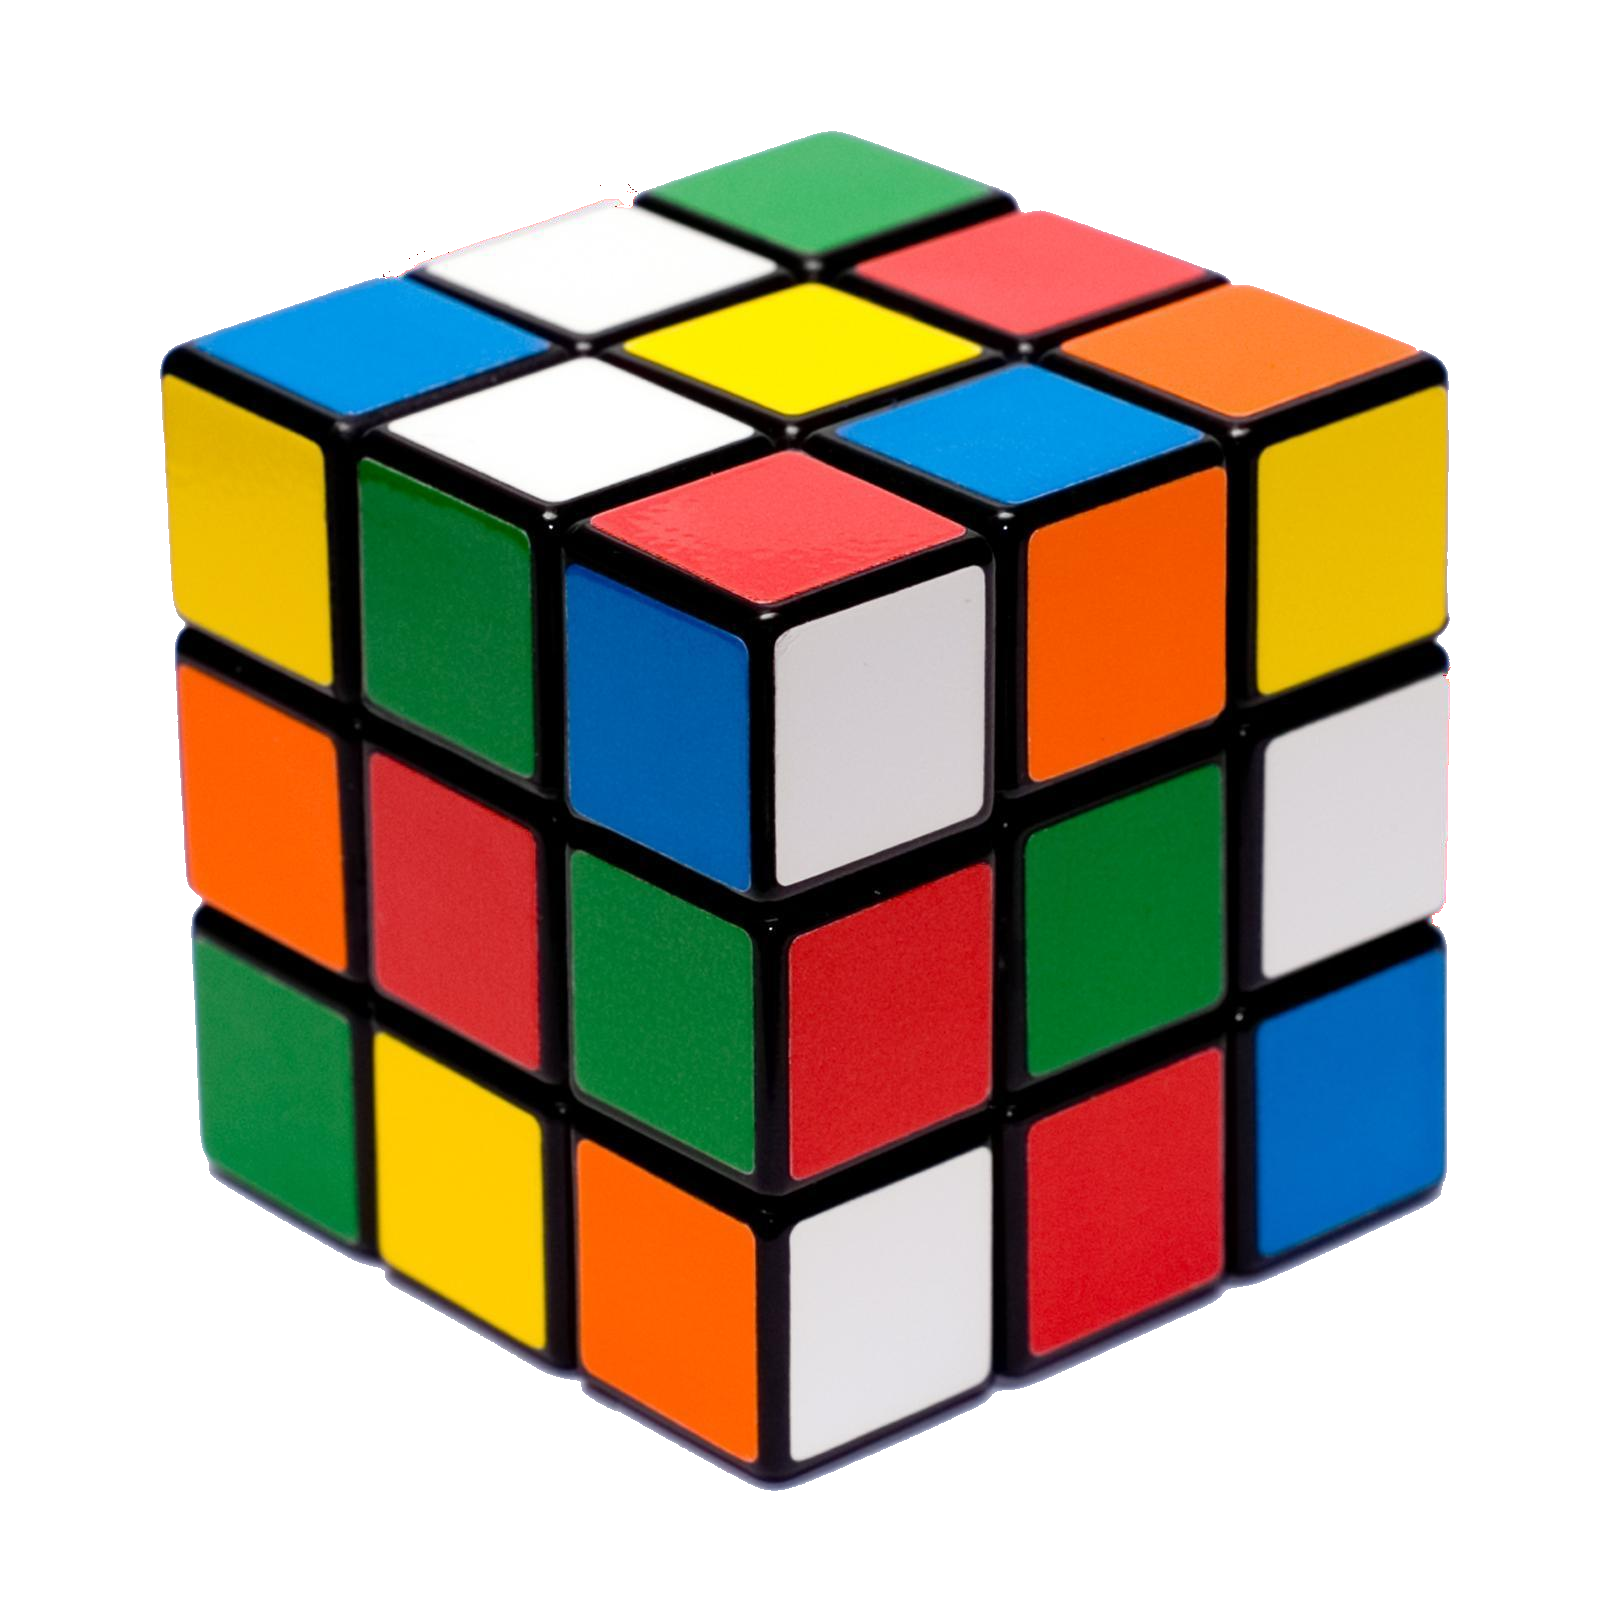 picture freeuse stock Cube transparent random. Image rubik s transparency